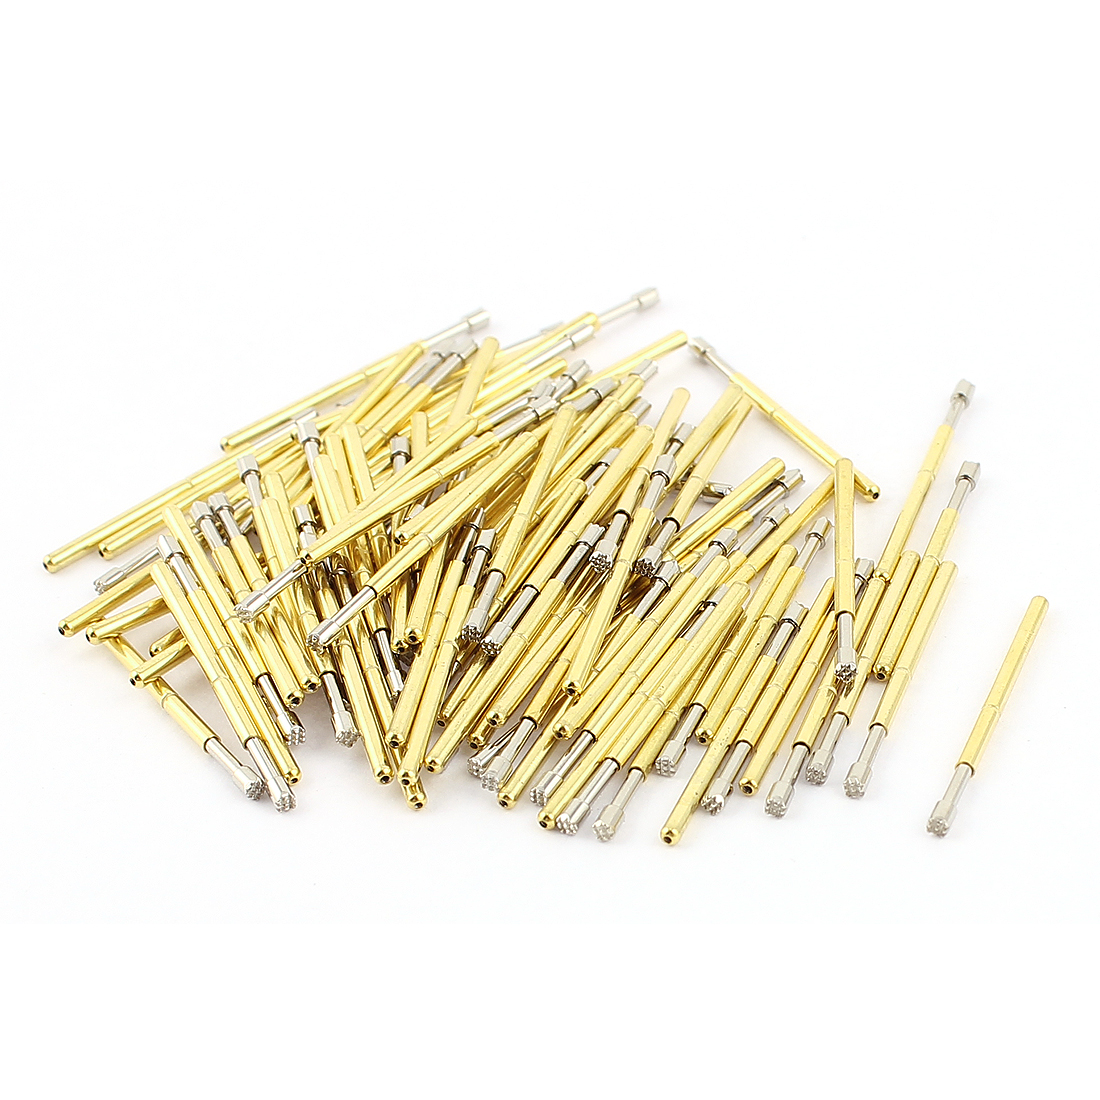 P125-H2 1.5mm Dia Serrated Tip 25mm Length Metal Spring Test Probe Pin 100pcs